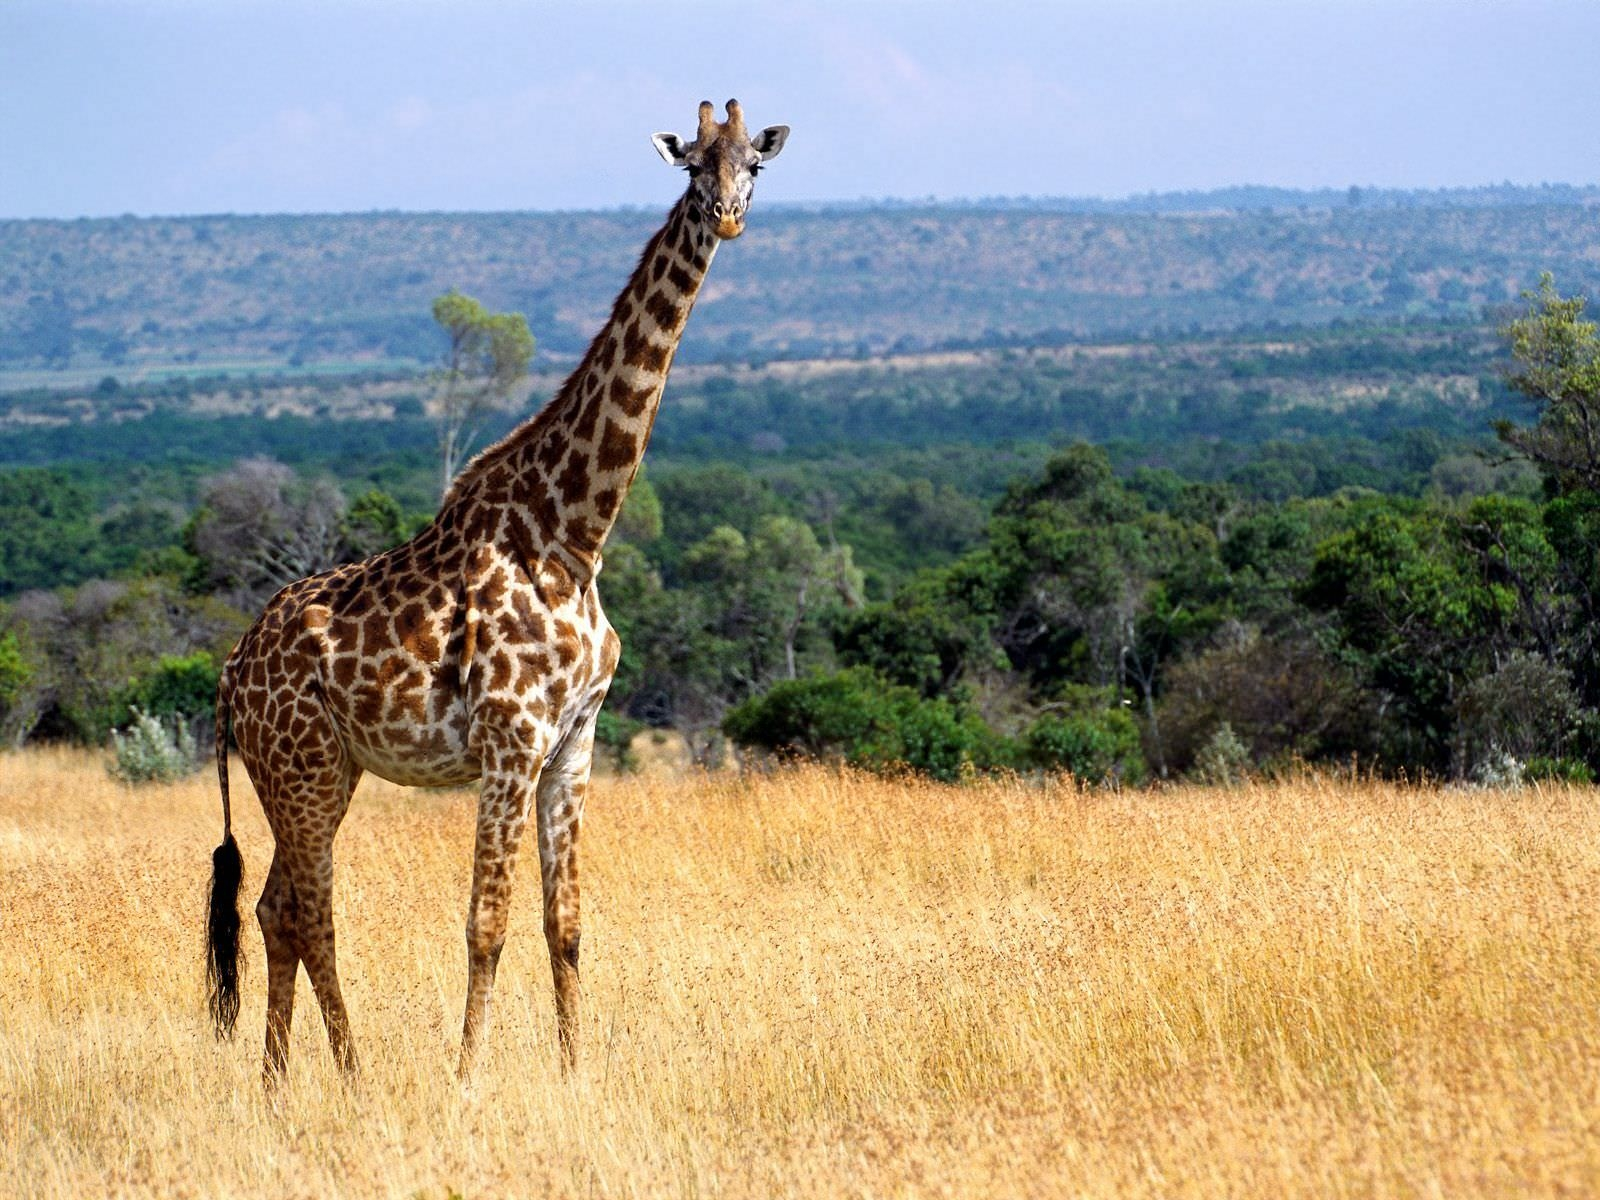 Giraffe Wallpaper For Download